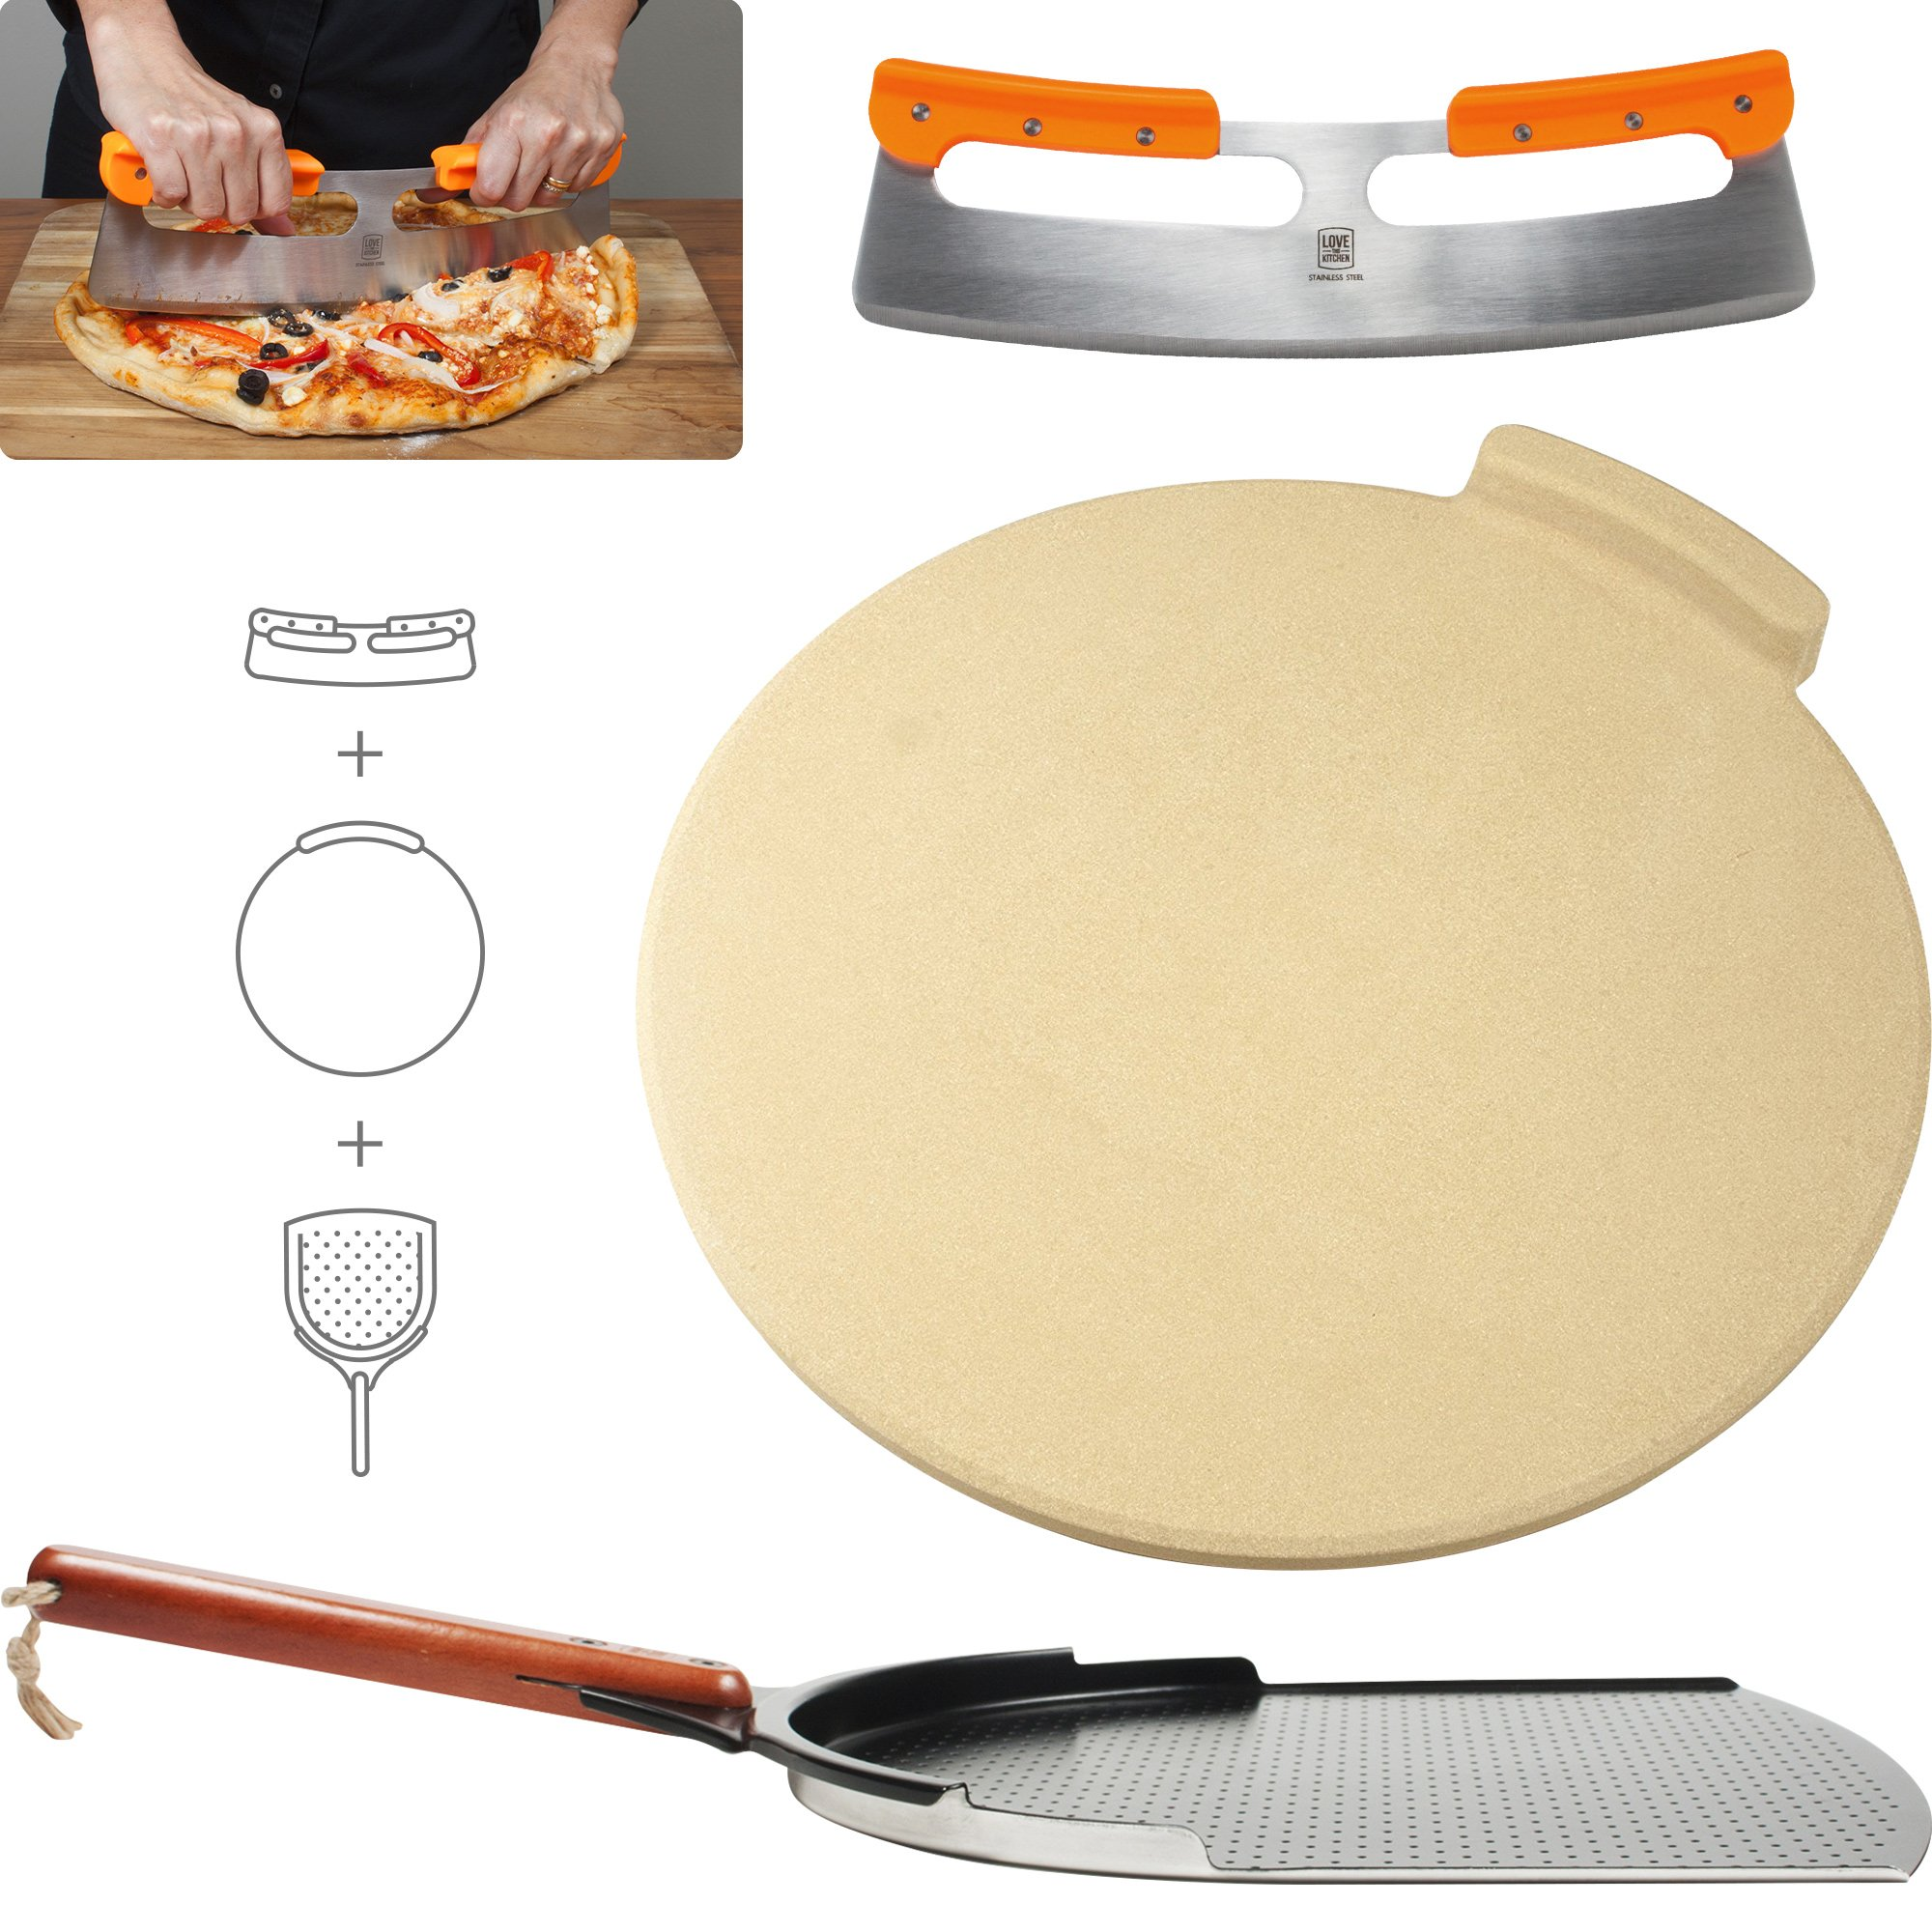 The Ultimate Pizza Making Tools - Classic 16'' Round Pizza Stone, 14'' Aluminum Pizza Peel and 14'' Stainless Steel Rocker Cutter | Great Bundle for Baking Pizza, Cookies, Bread in Oven or Grill by Love This Kitchen